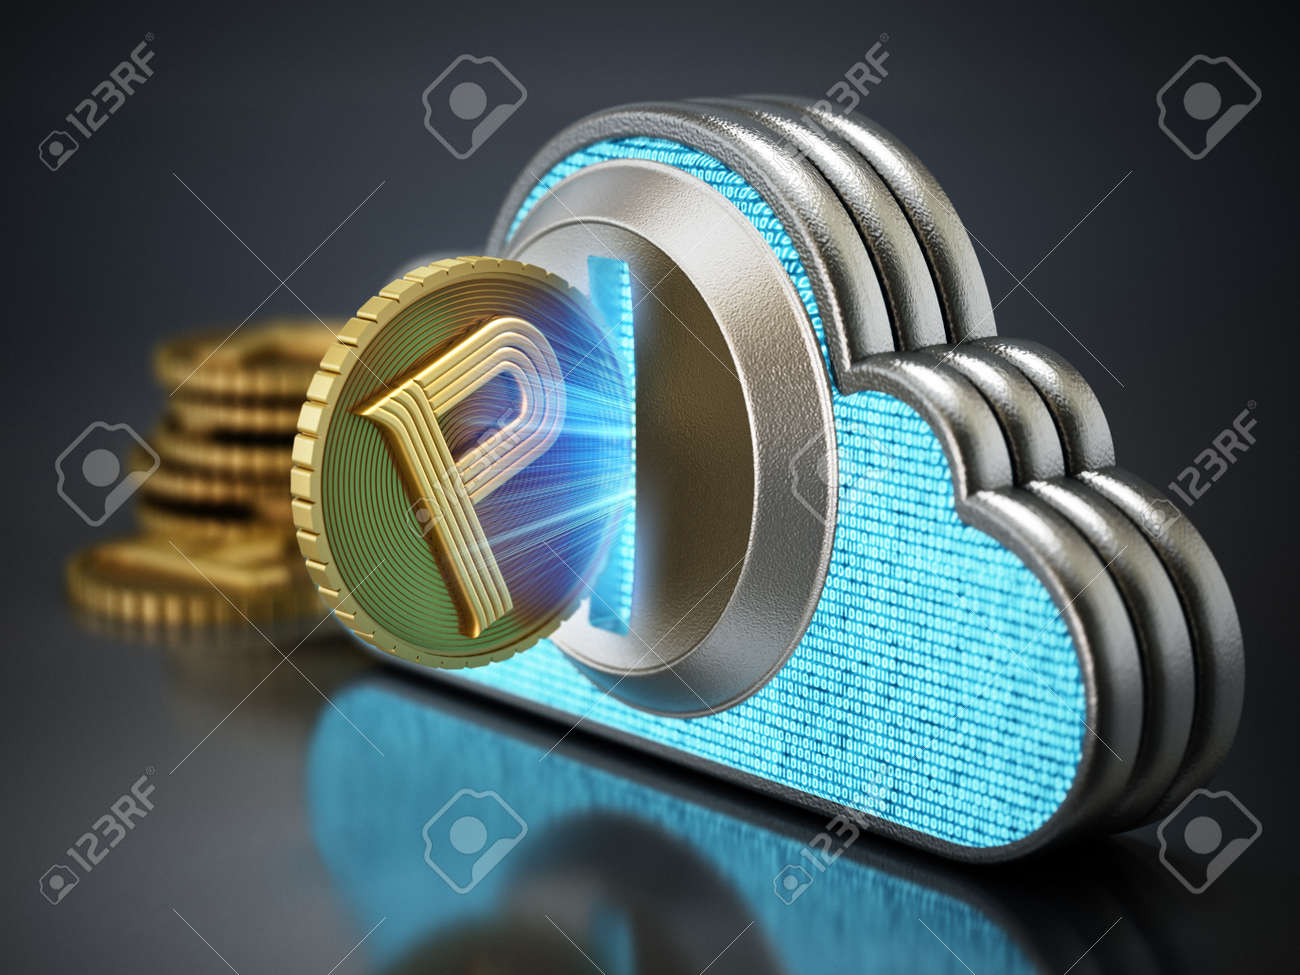 Cryptocurrency coin with cloud shaped coin counter. 3D illustration. - 172447460